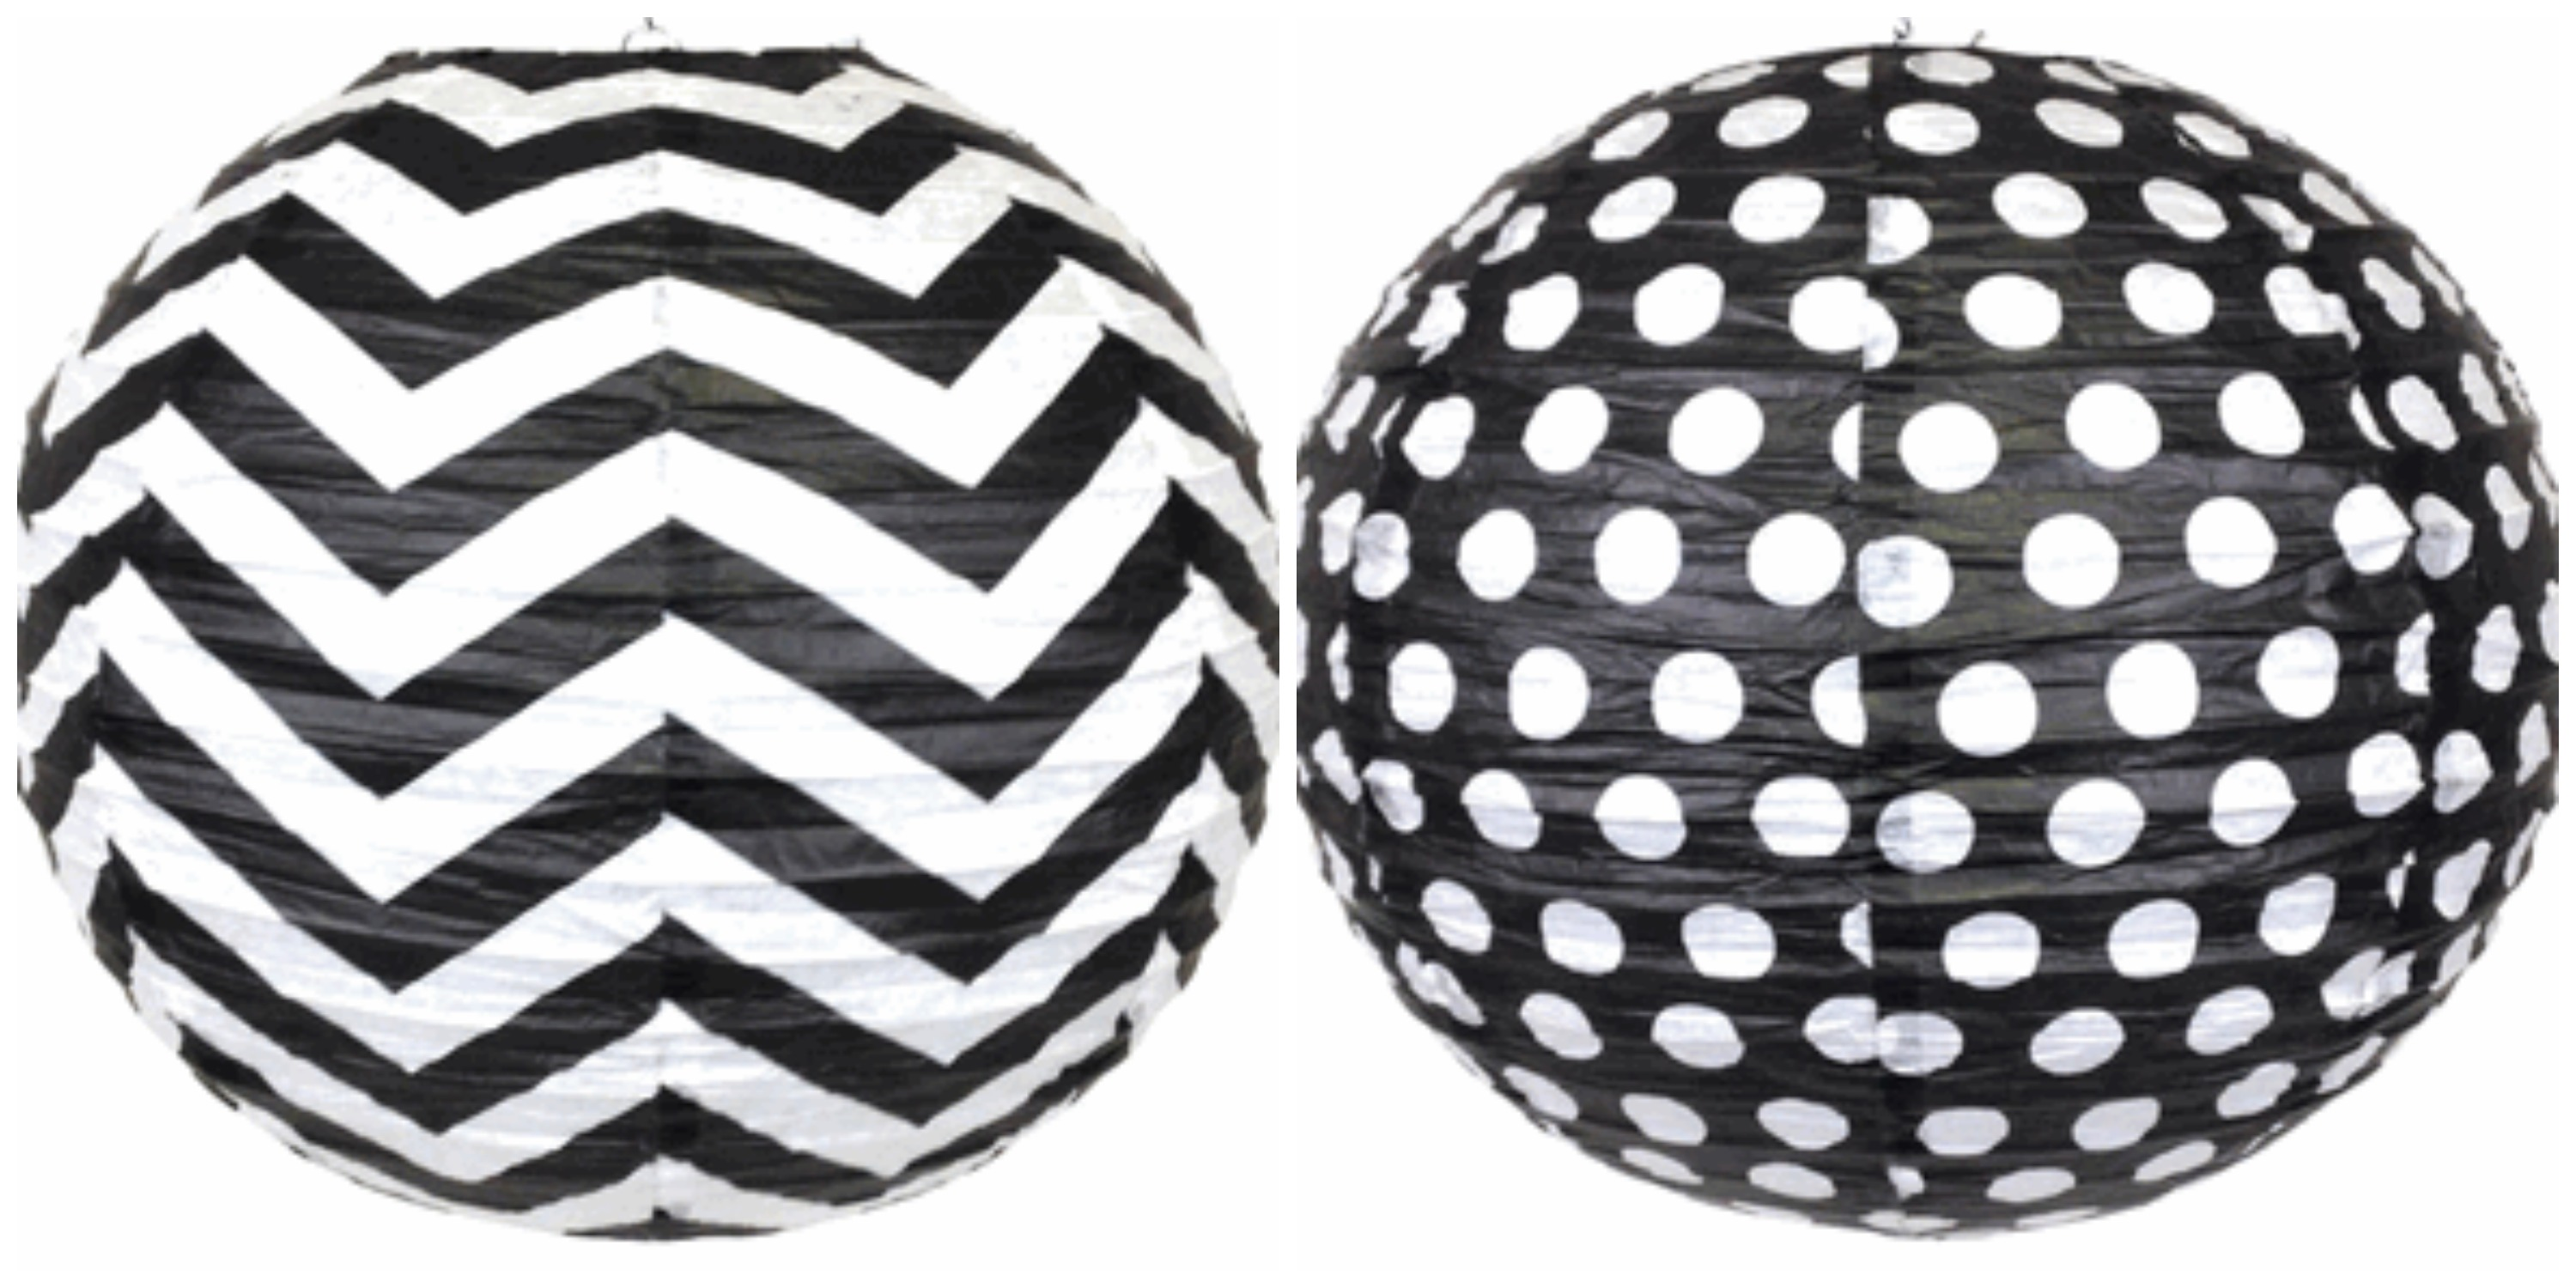 black and white chevron polka dots classroom decor by Schoolgirl Style